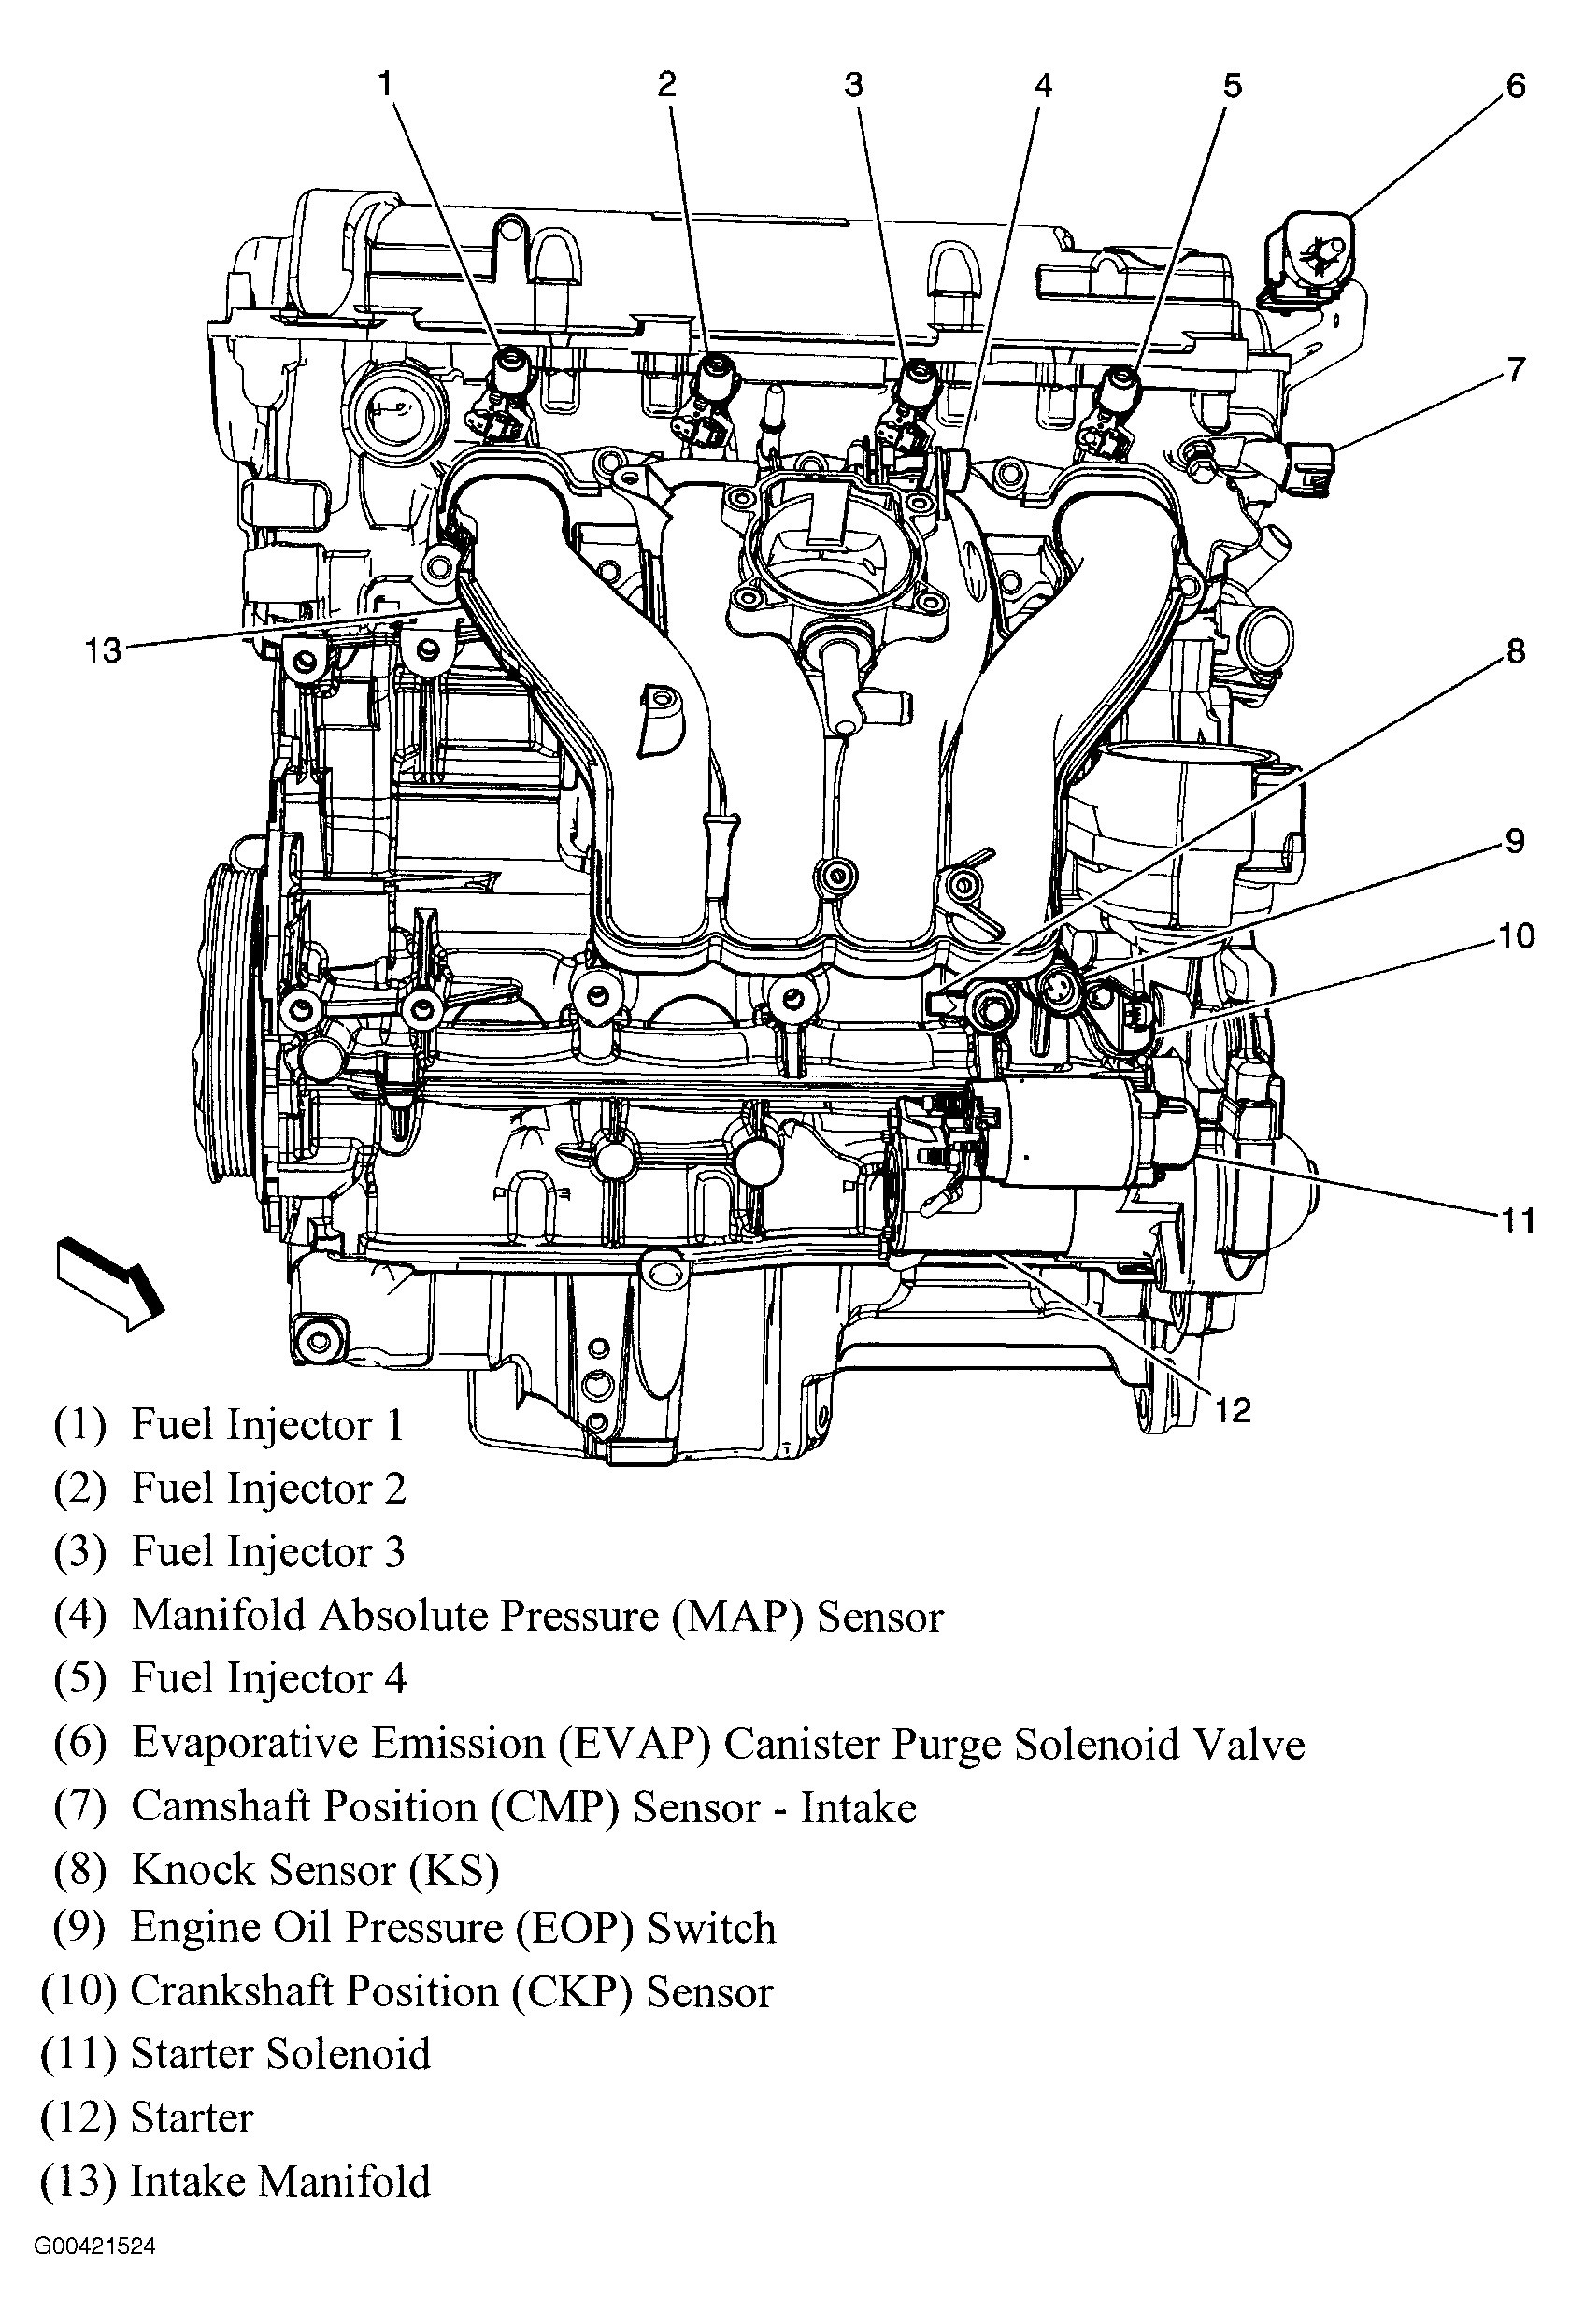 hight resolution of 4 8 silverado engine diagram wiring library rh 5 skriptoase de car engine parts diagram v6 engine diagram